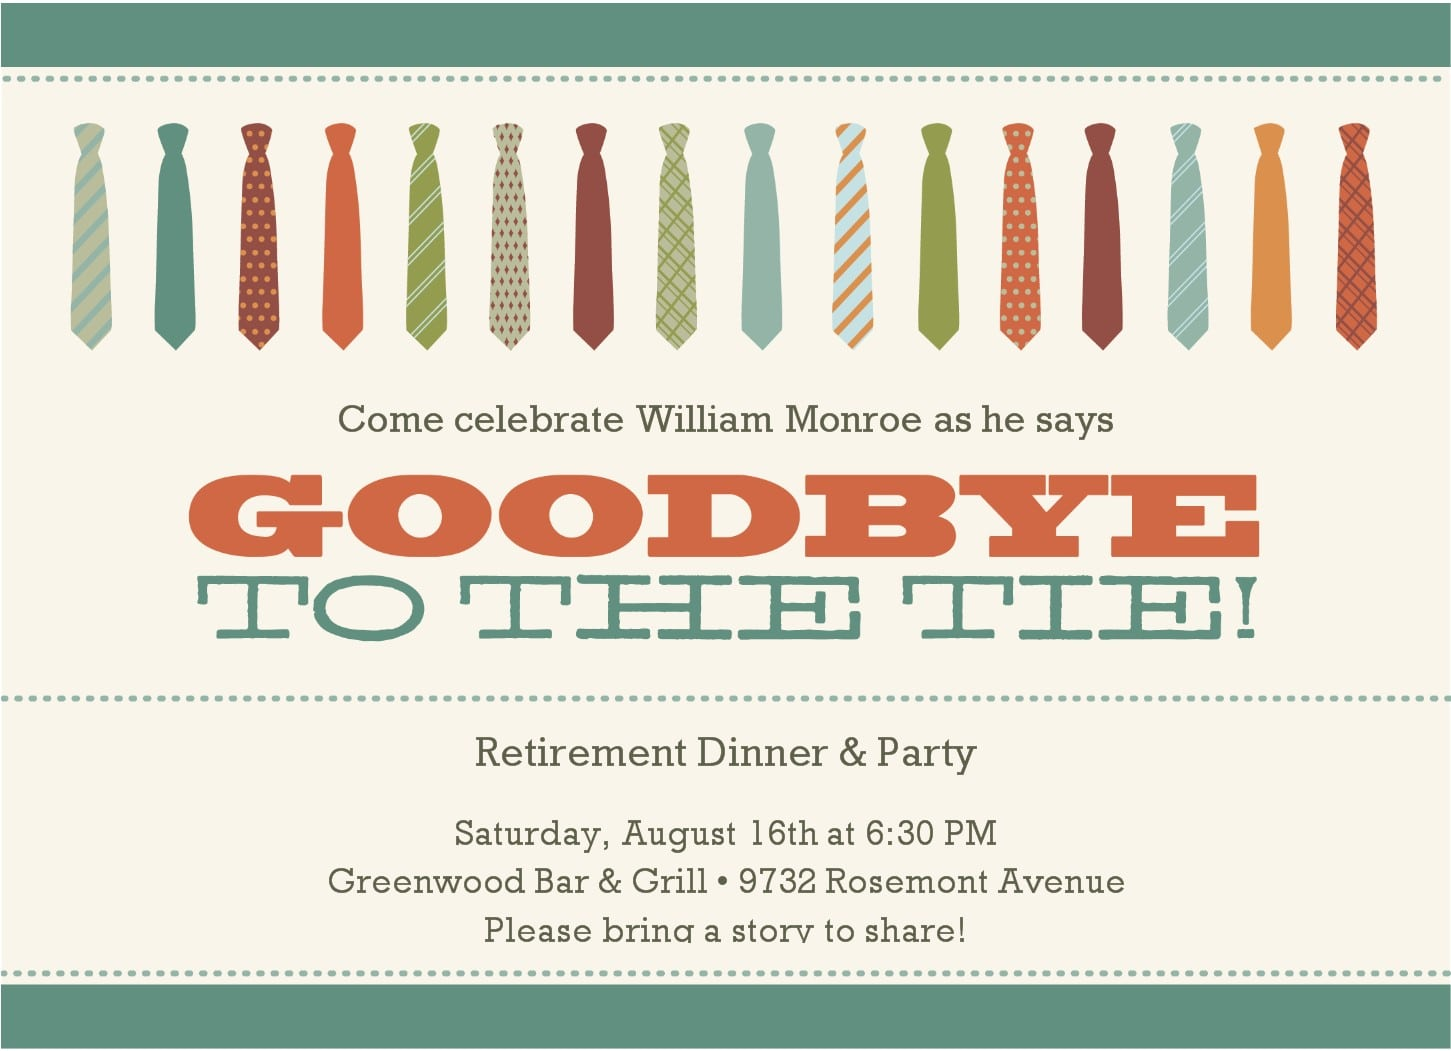 Retirement Party Invites Retirement Party Invites In Support Of